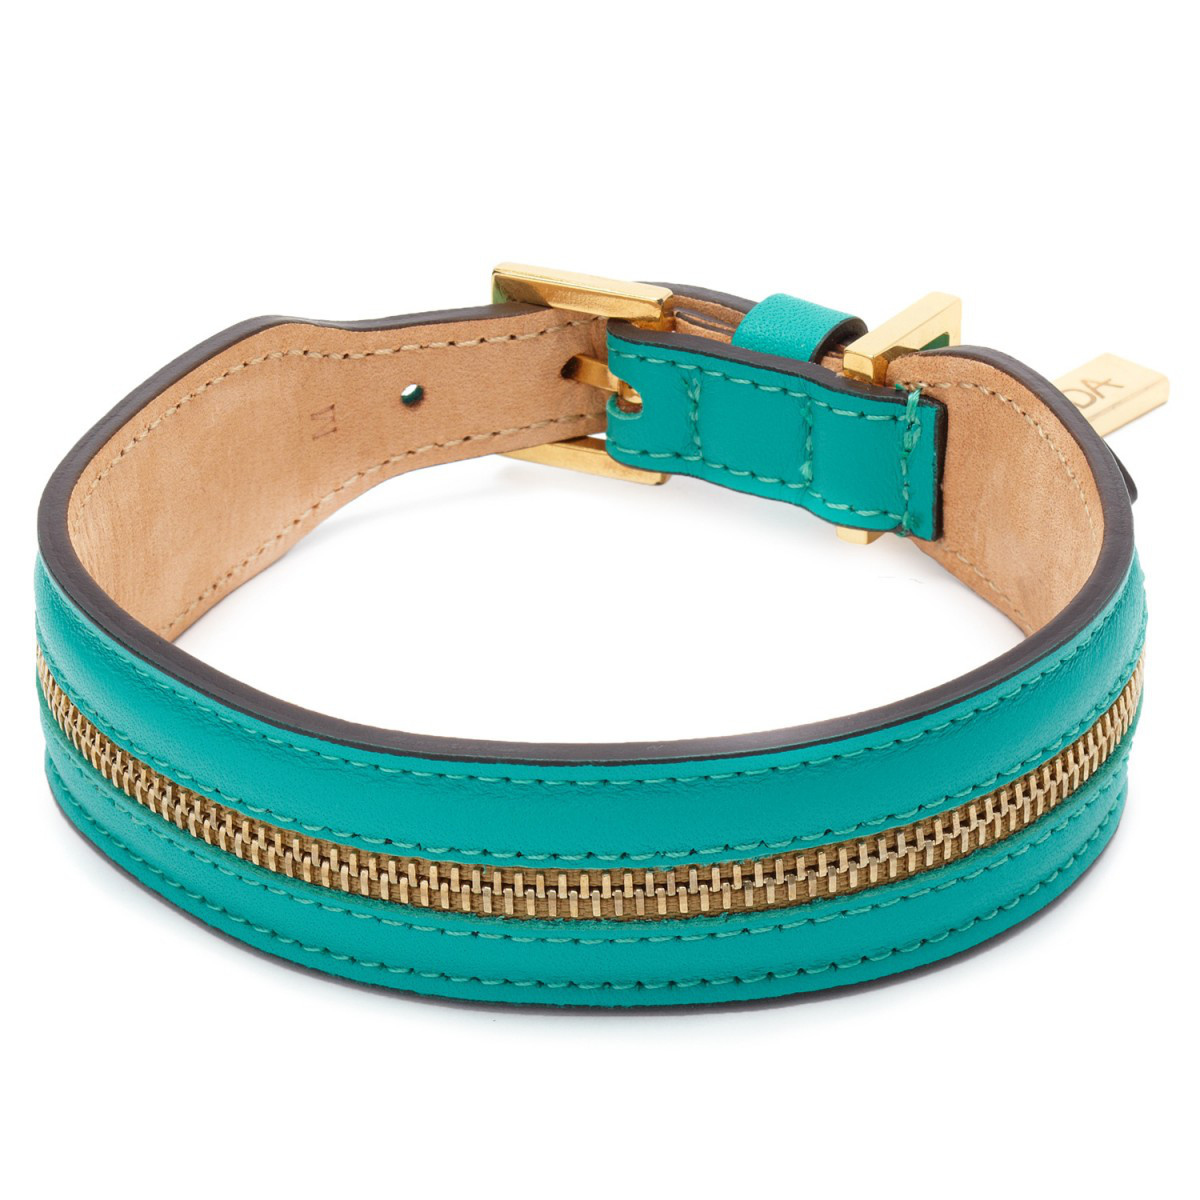 Luxury Dog Collars and Leads from Frida Firenze